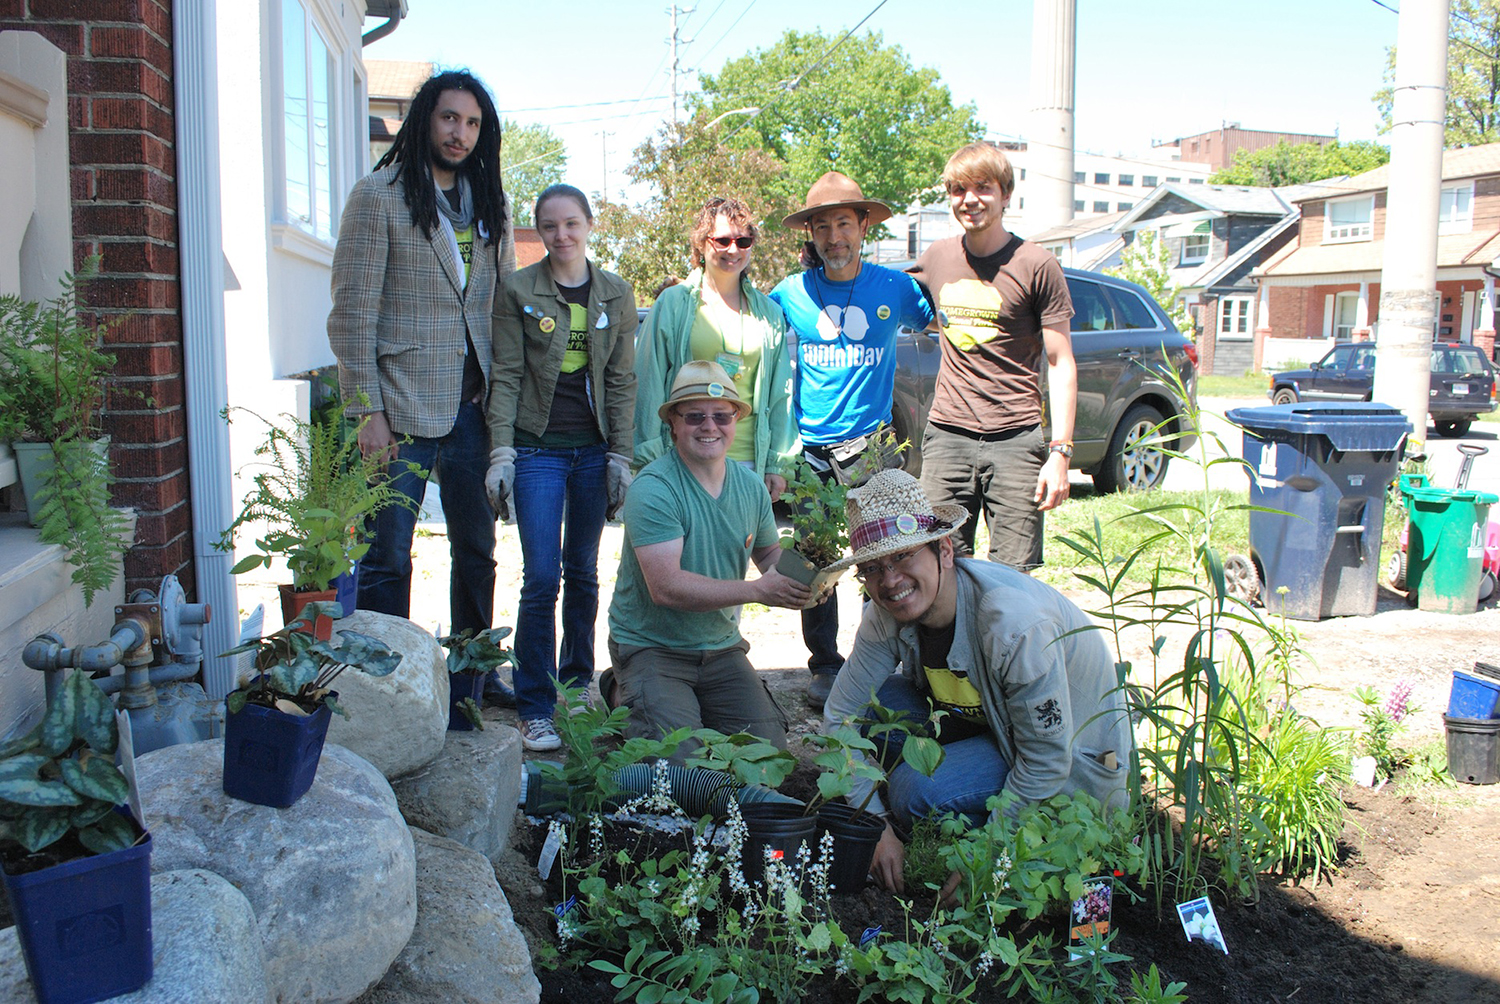 Participants in 100In1Day Toronto gather to help build a rain garden in a Toronto neighbourhood. Image: Kat Augustin